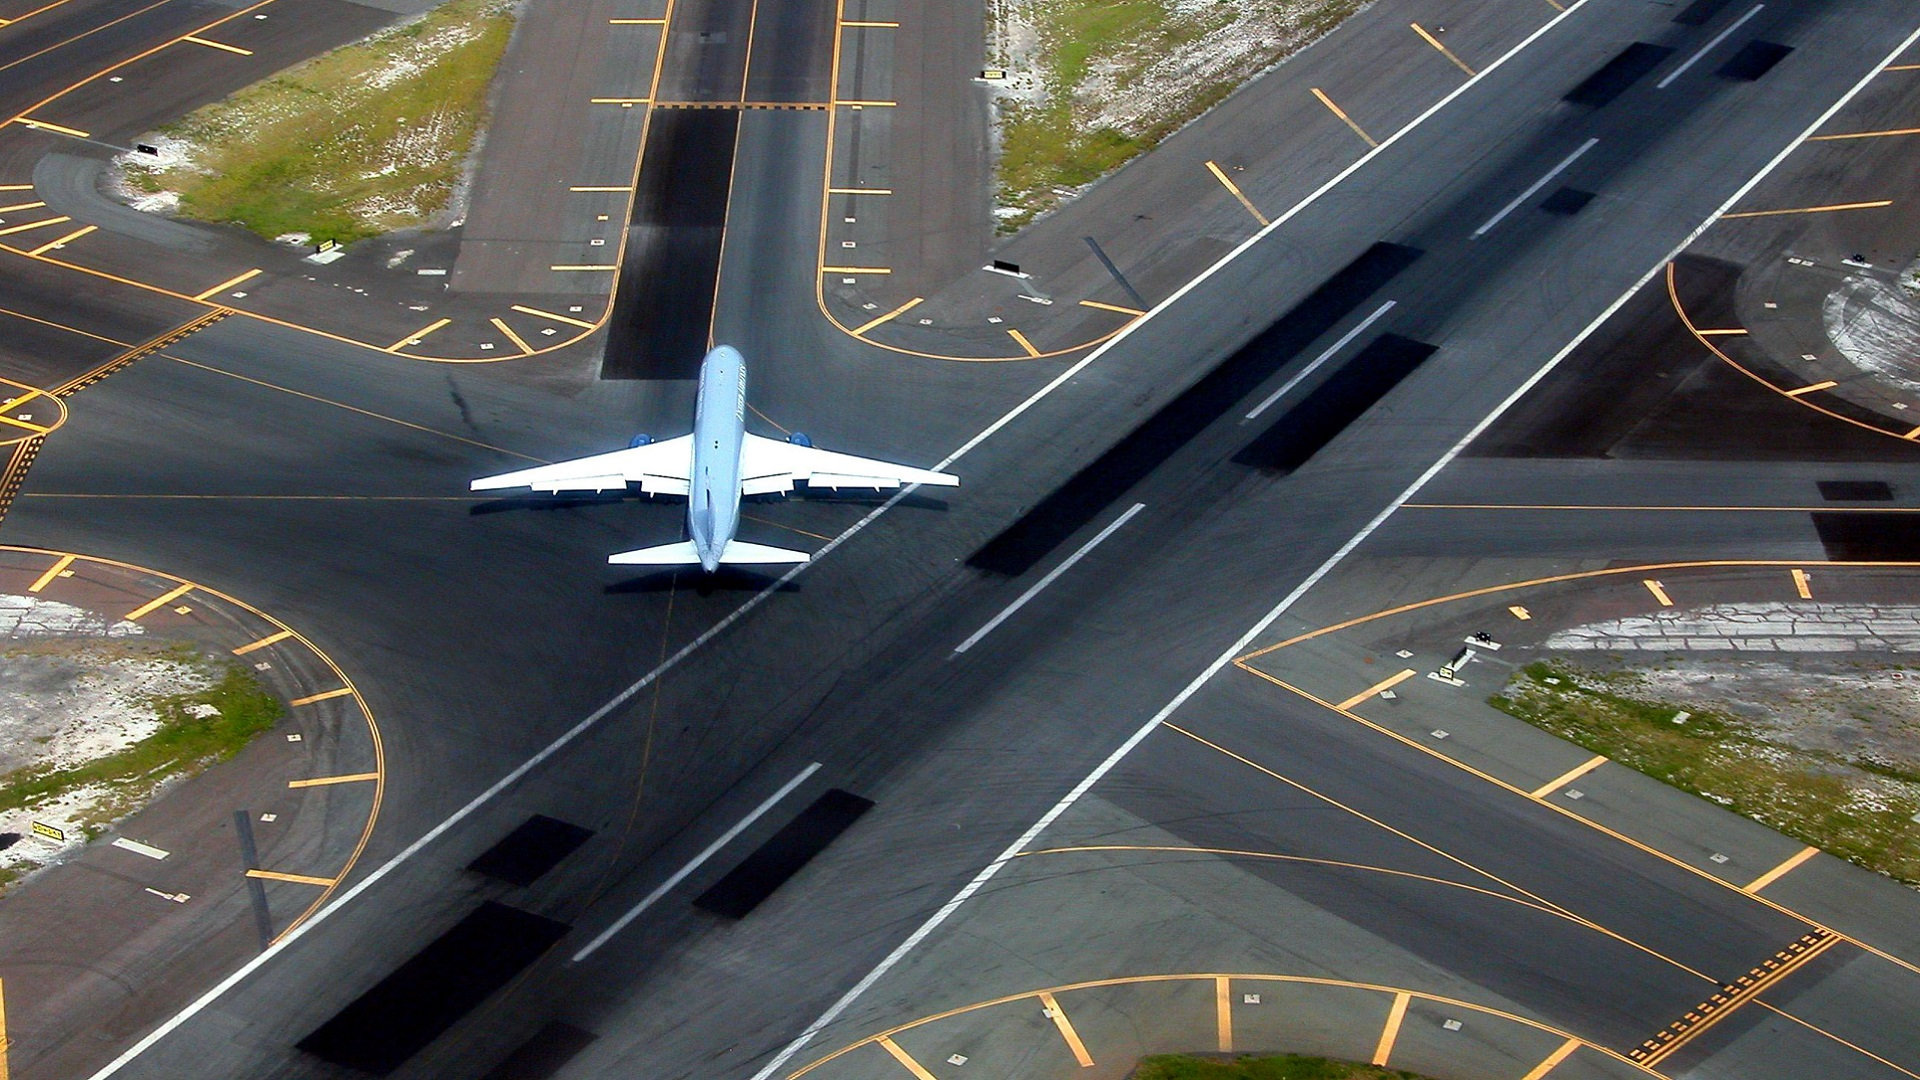 Airport runway with plane